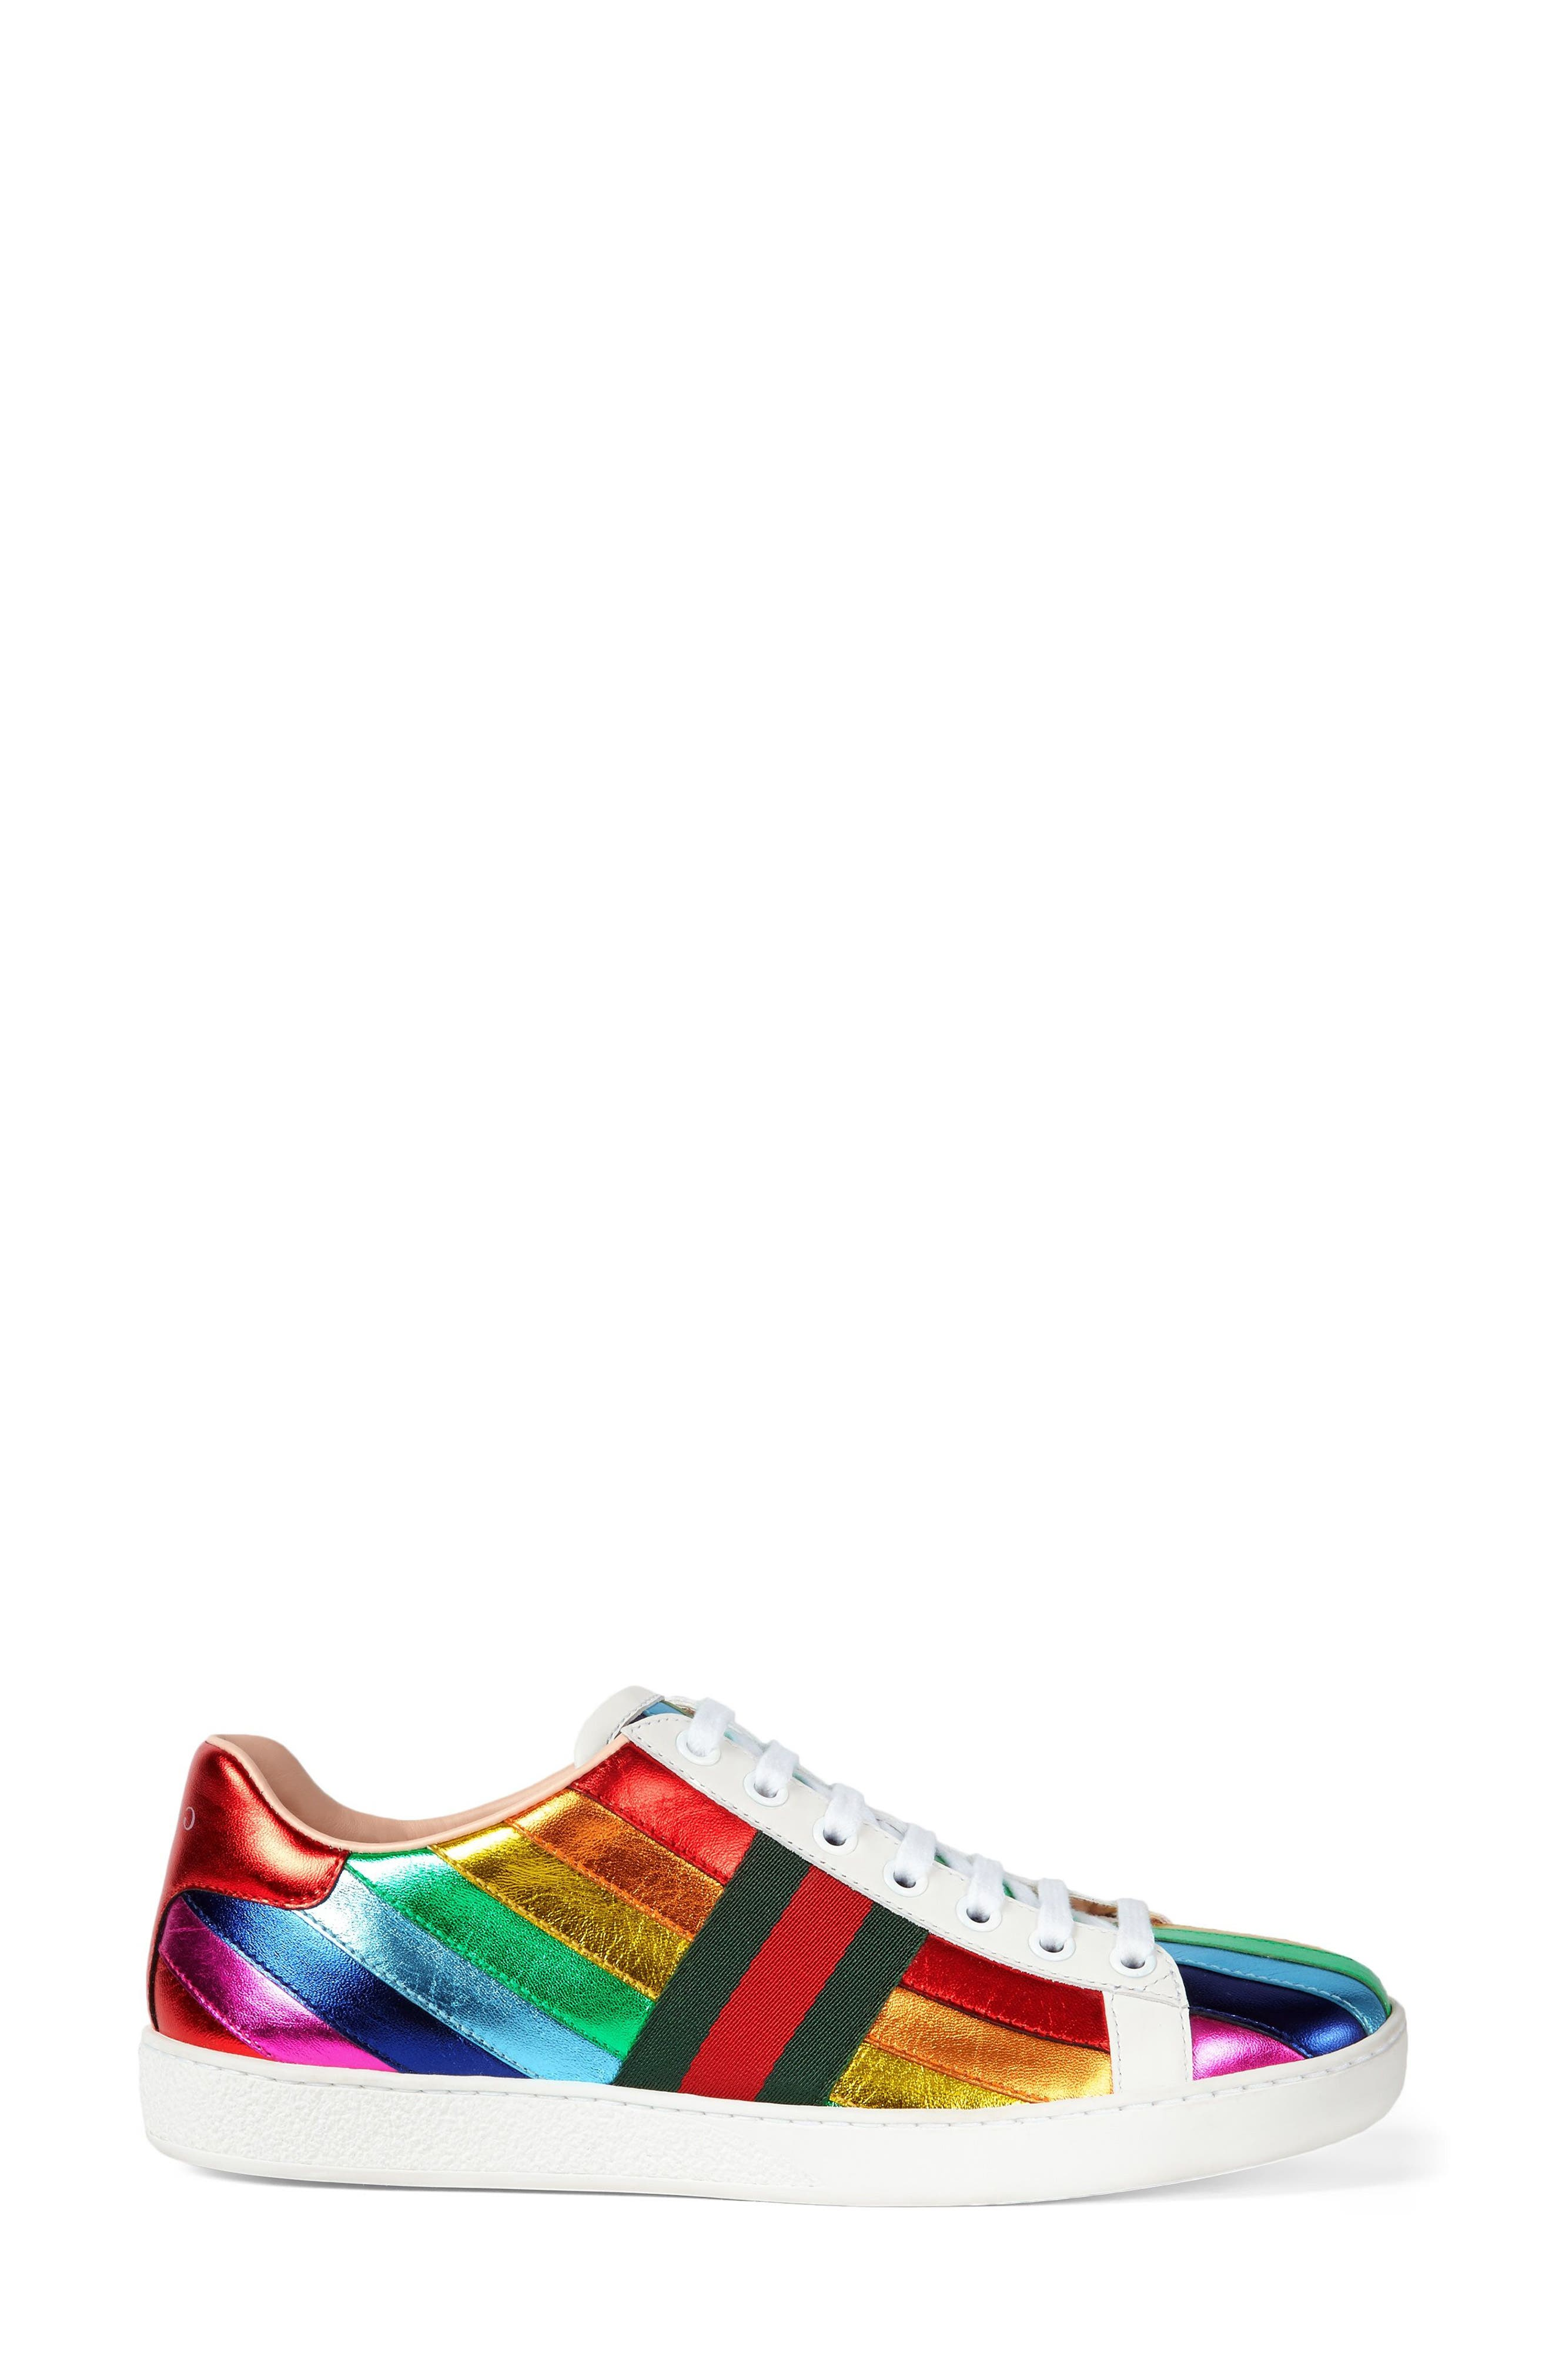 Alternate Image 1 Selected - Gucci New Ace Rainbow Sneaker (Women)